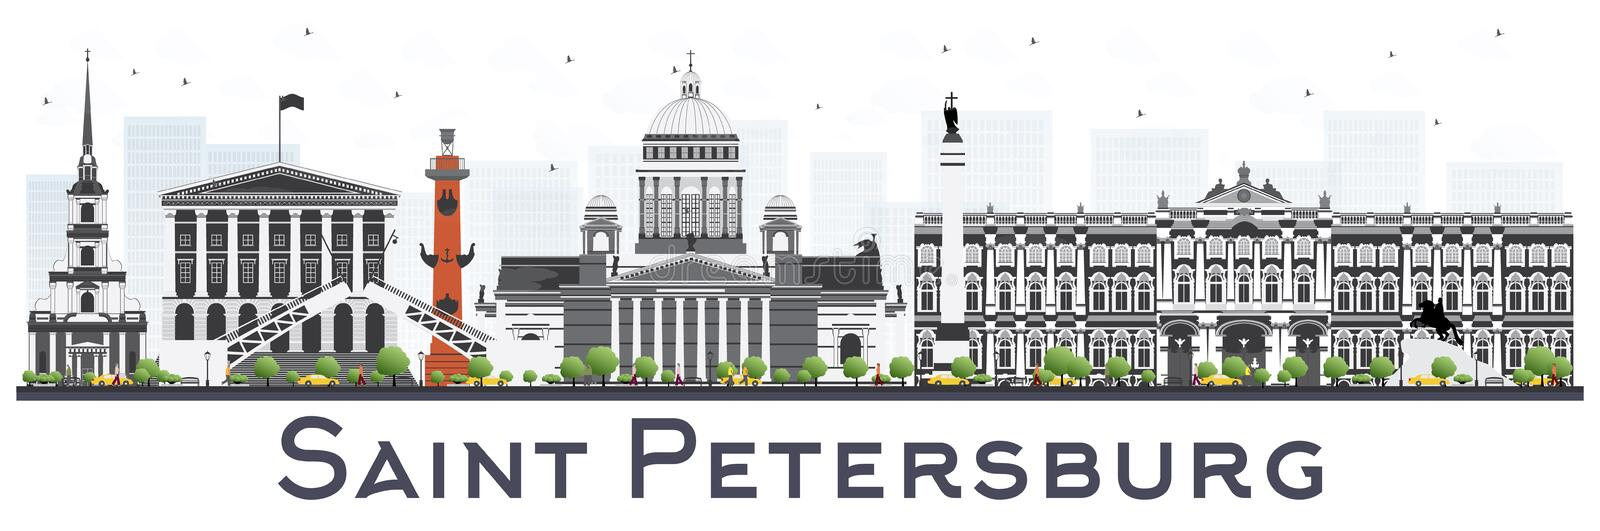 Saint Petersburg Skyline with Color Buildings Isolated on White stock illustration